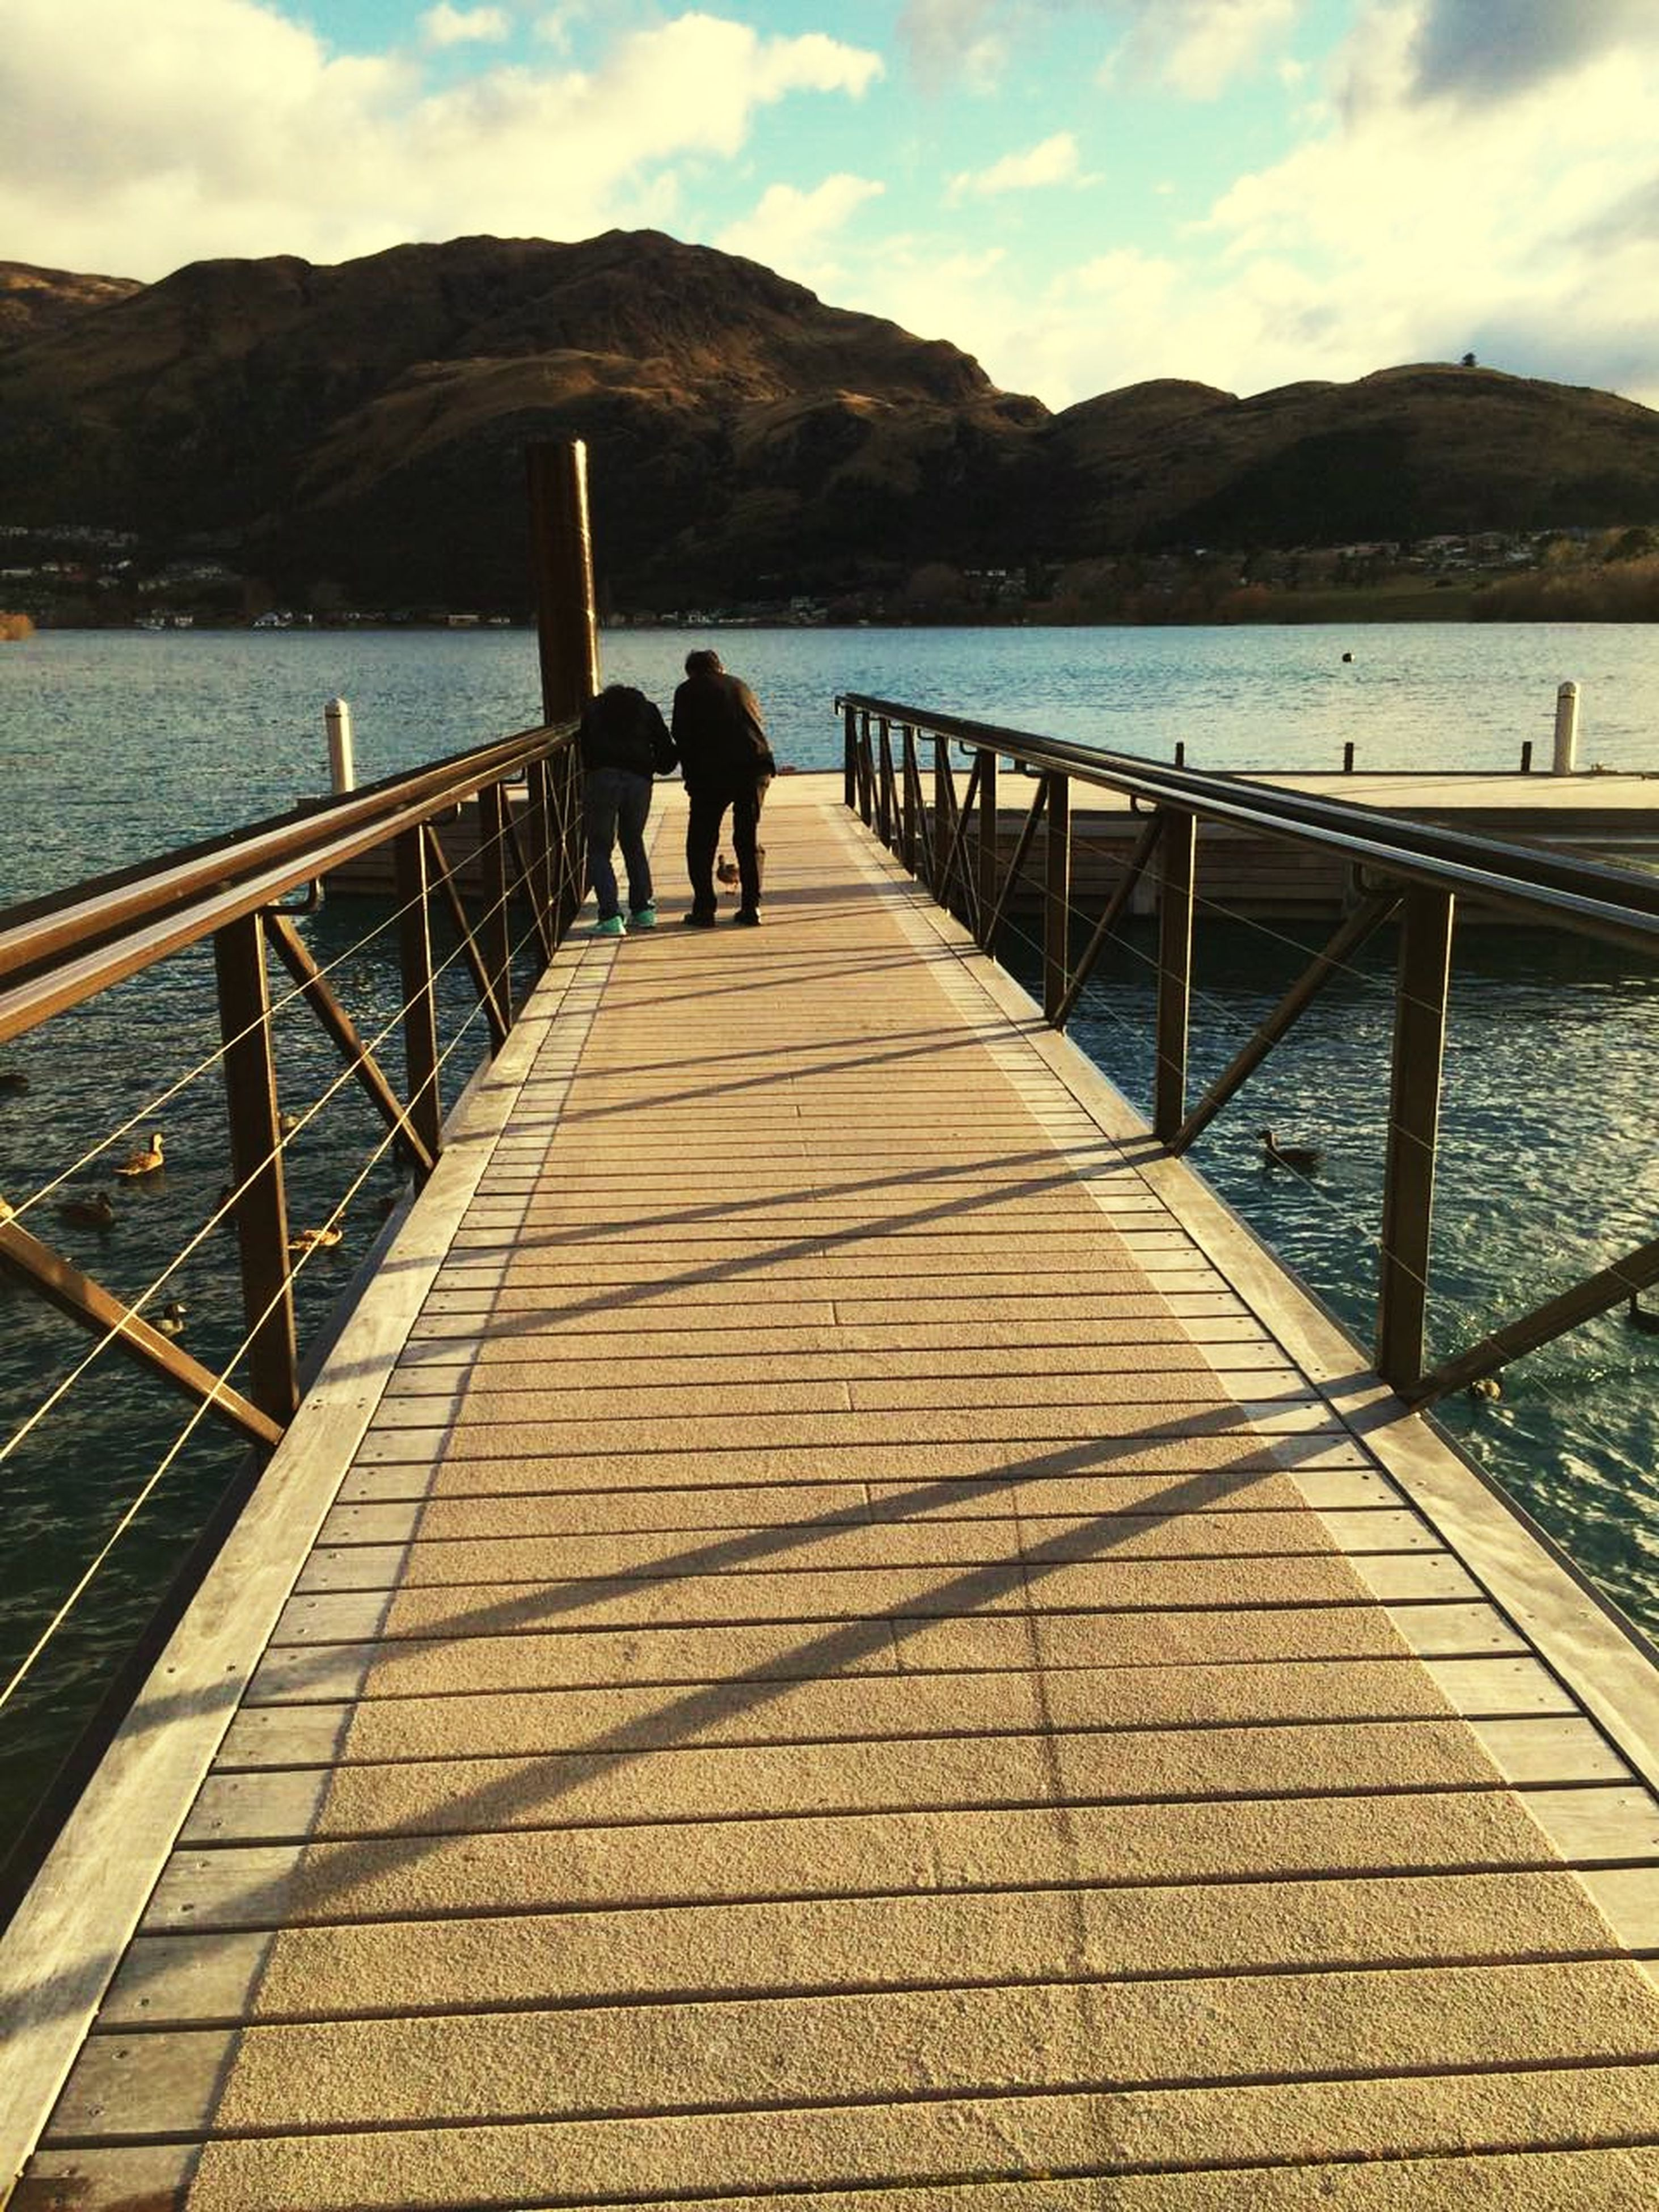 water, mountain, railing, leisure activity, lifestyles, men, pier, sky, rear view, person, full length, tranquil scene, tranquility, scenics, the way forward, beauty in nature, walking